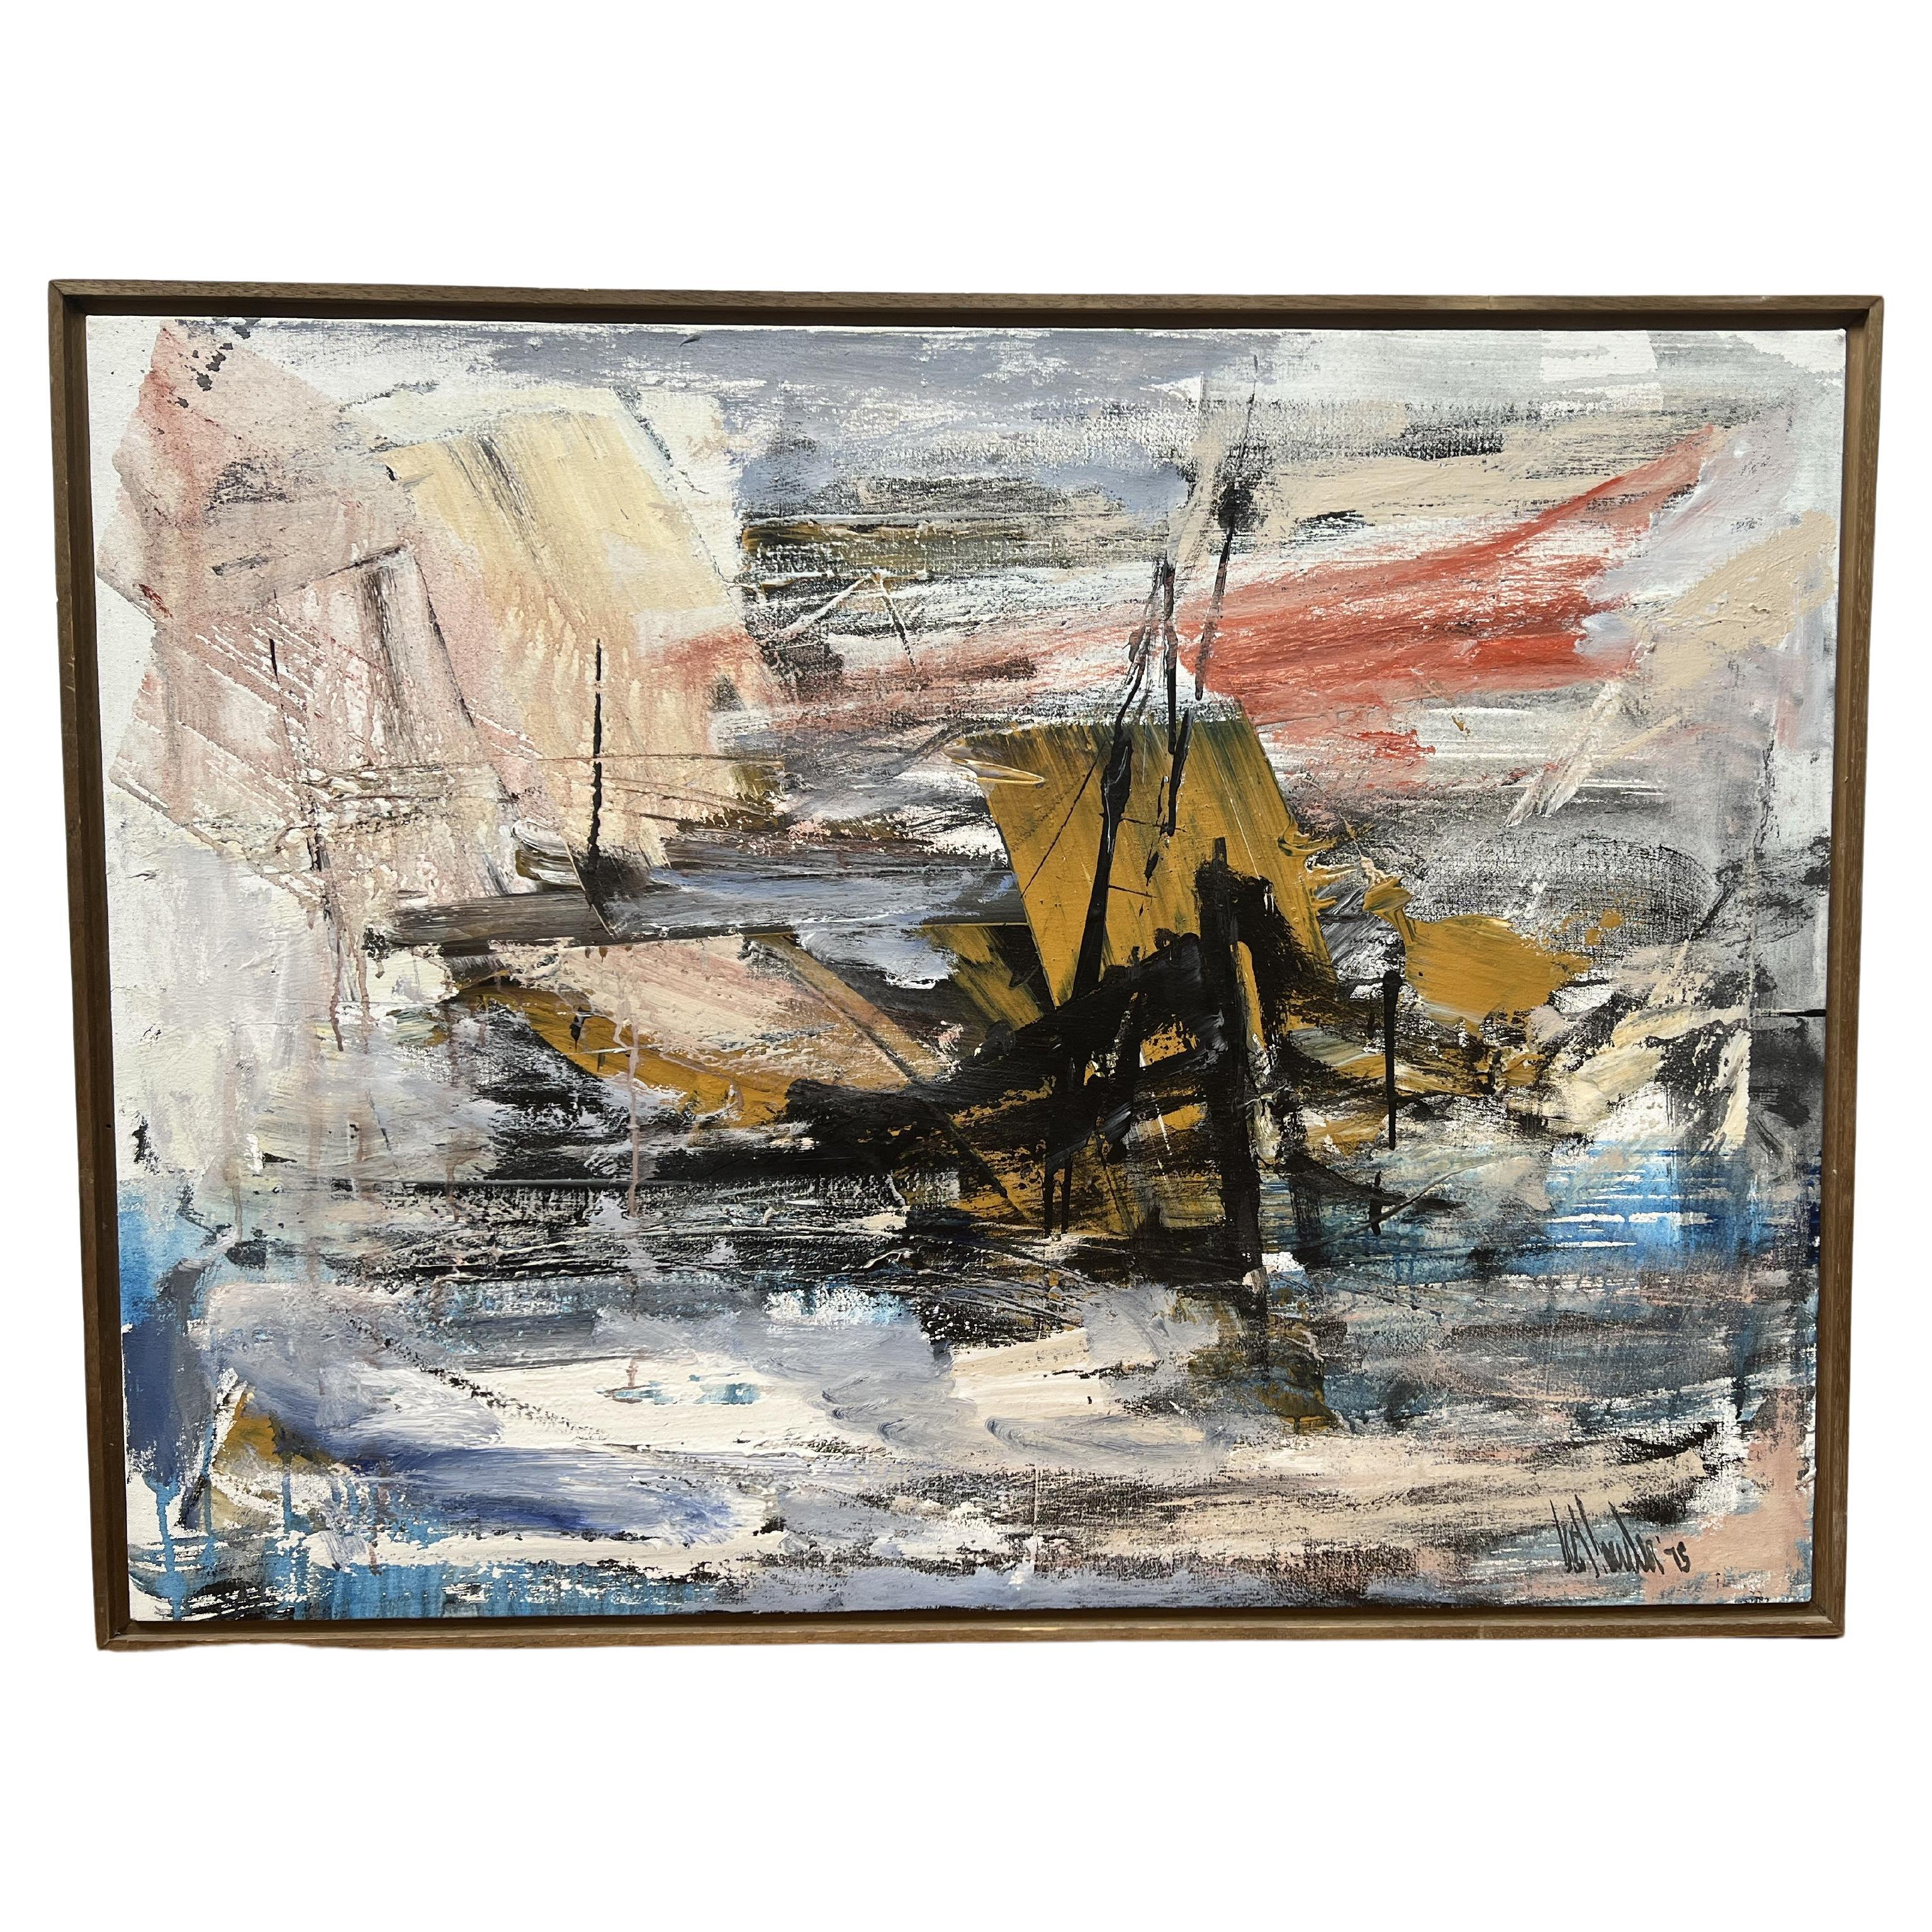 Gino Hollander Oil Painting of Shipwreck in a Storm